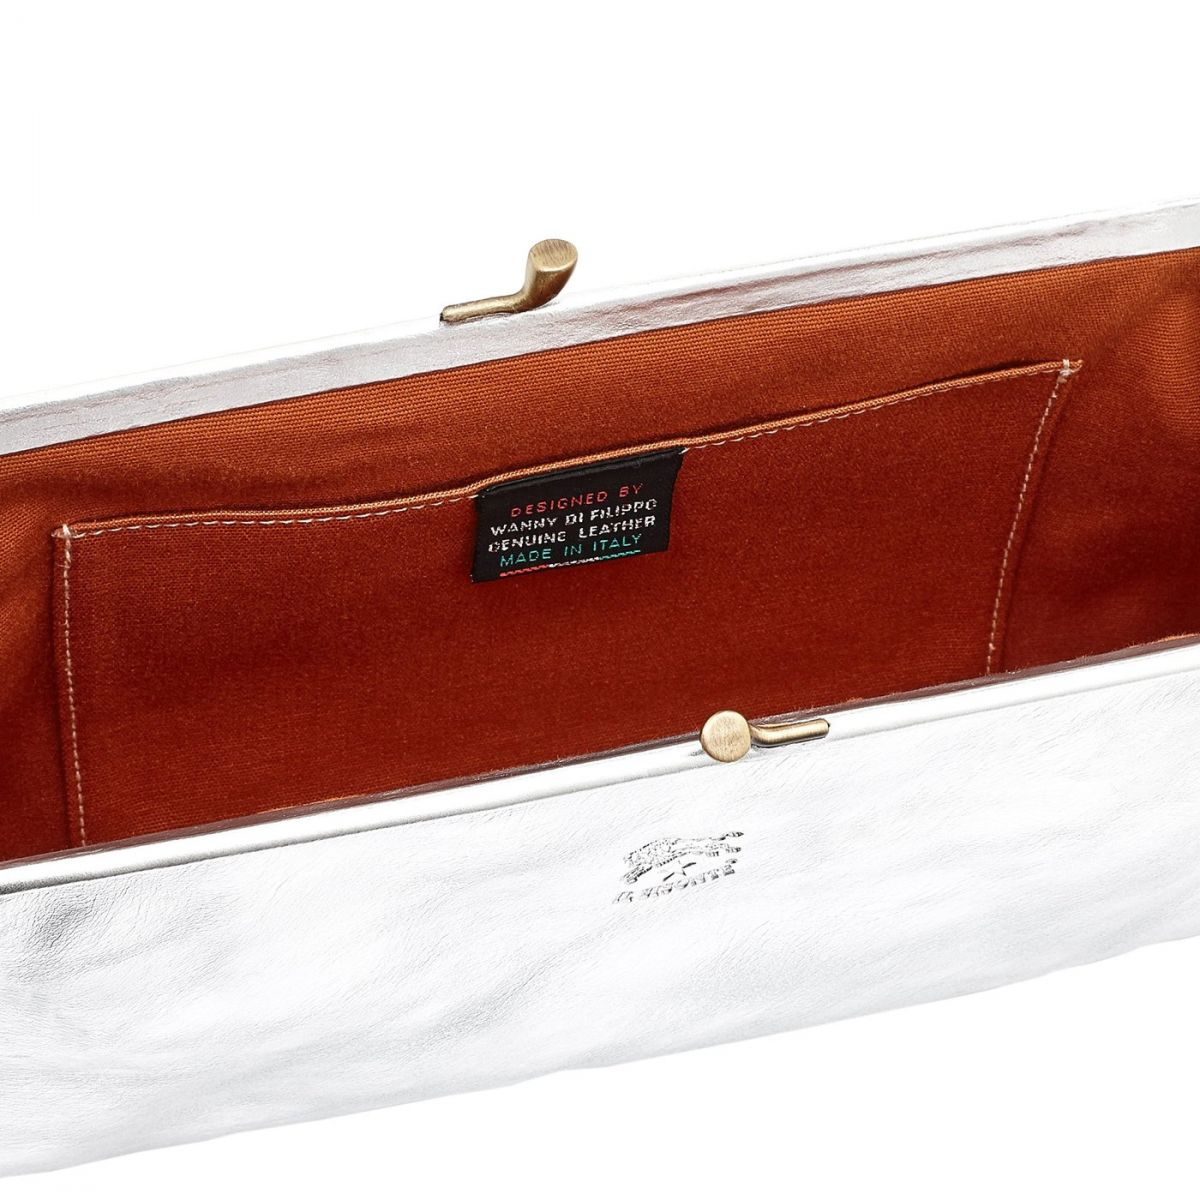 Women's Clutch Bag in Metallic Leather BCL027 color Metallic Silver | Details